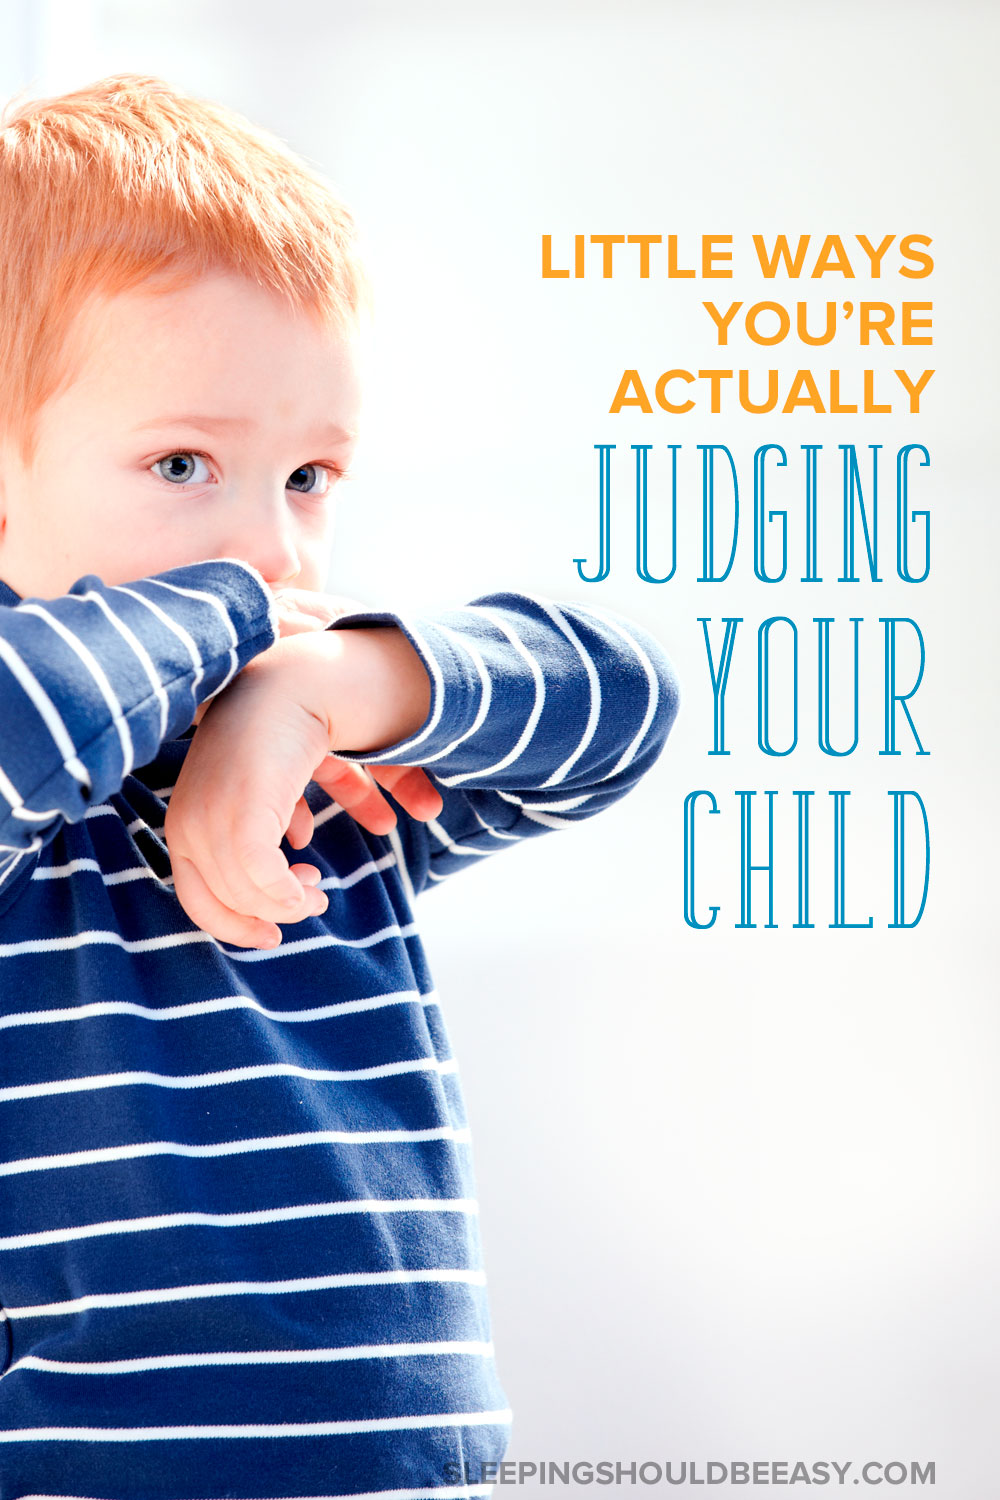 Do you act different when your child is throwing a fit than when he is happy and excited? Avoid the mistake of judging your child's emotions.